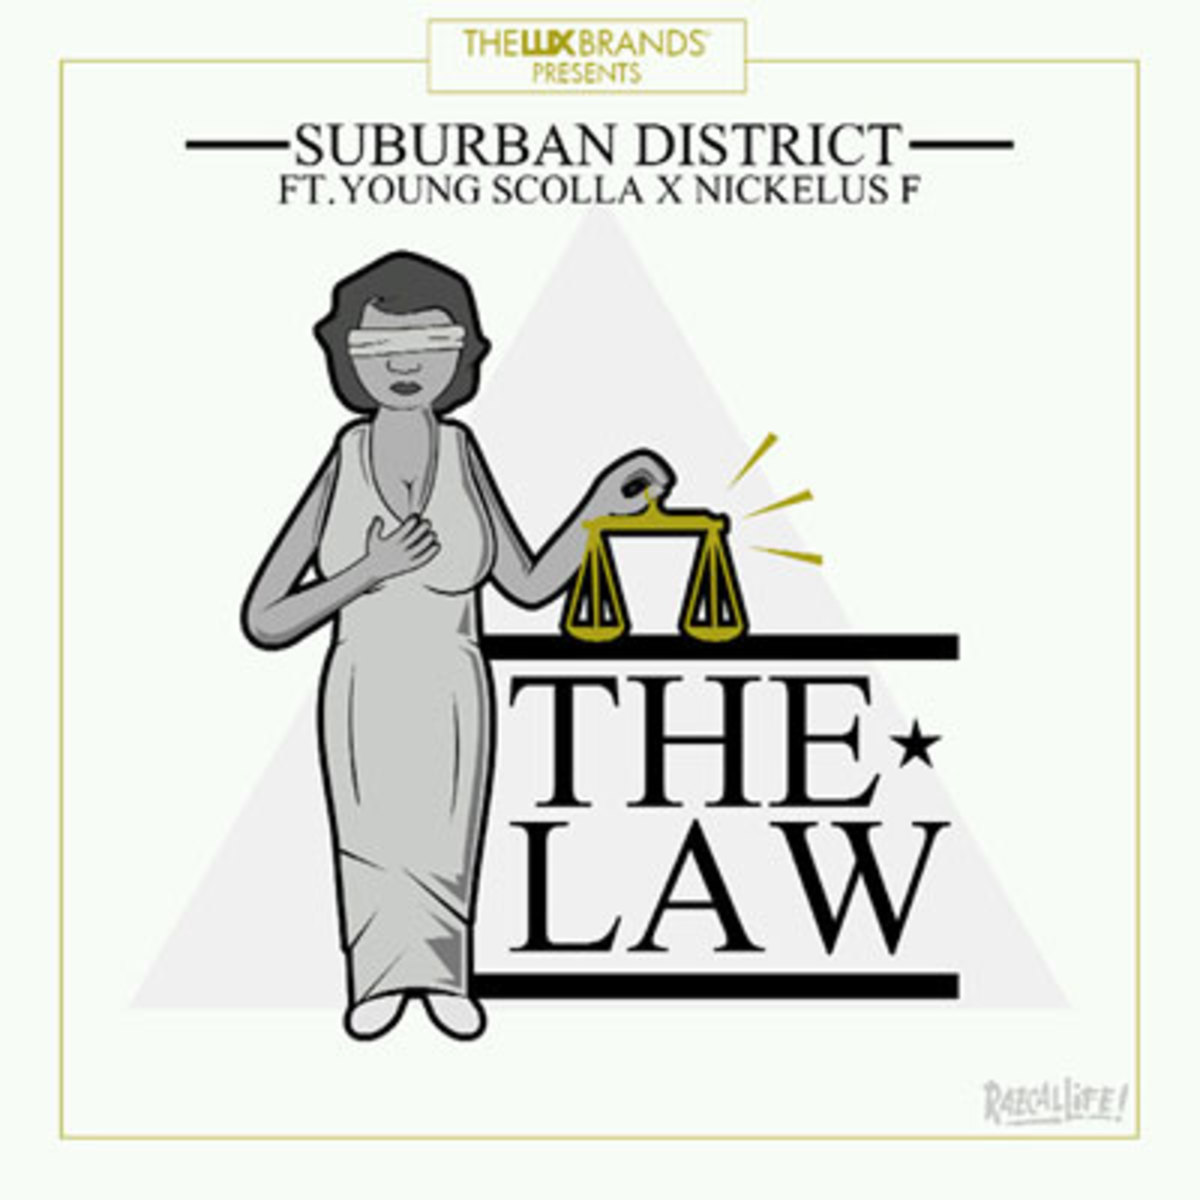 suburbandistrict-thelaw.jpg